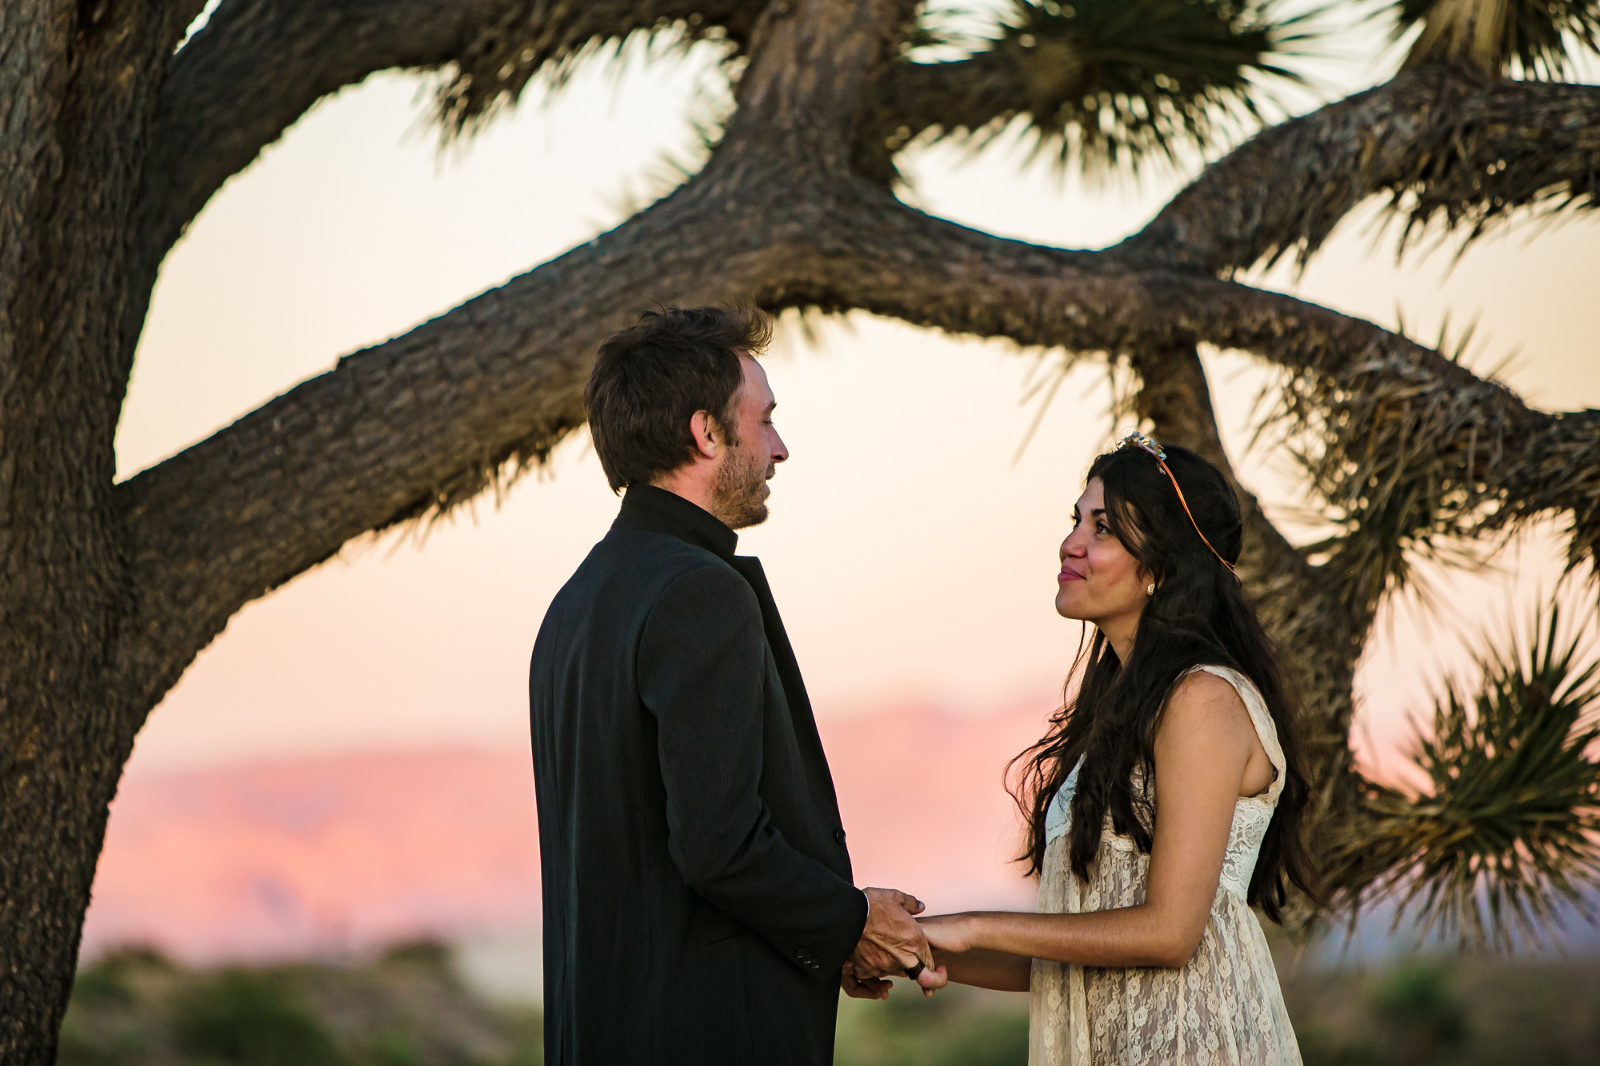 Couple gets married in front of a Joshua Tree at sunset.